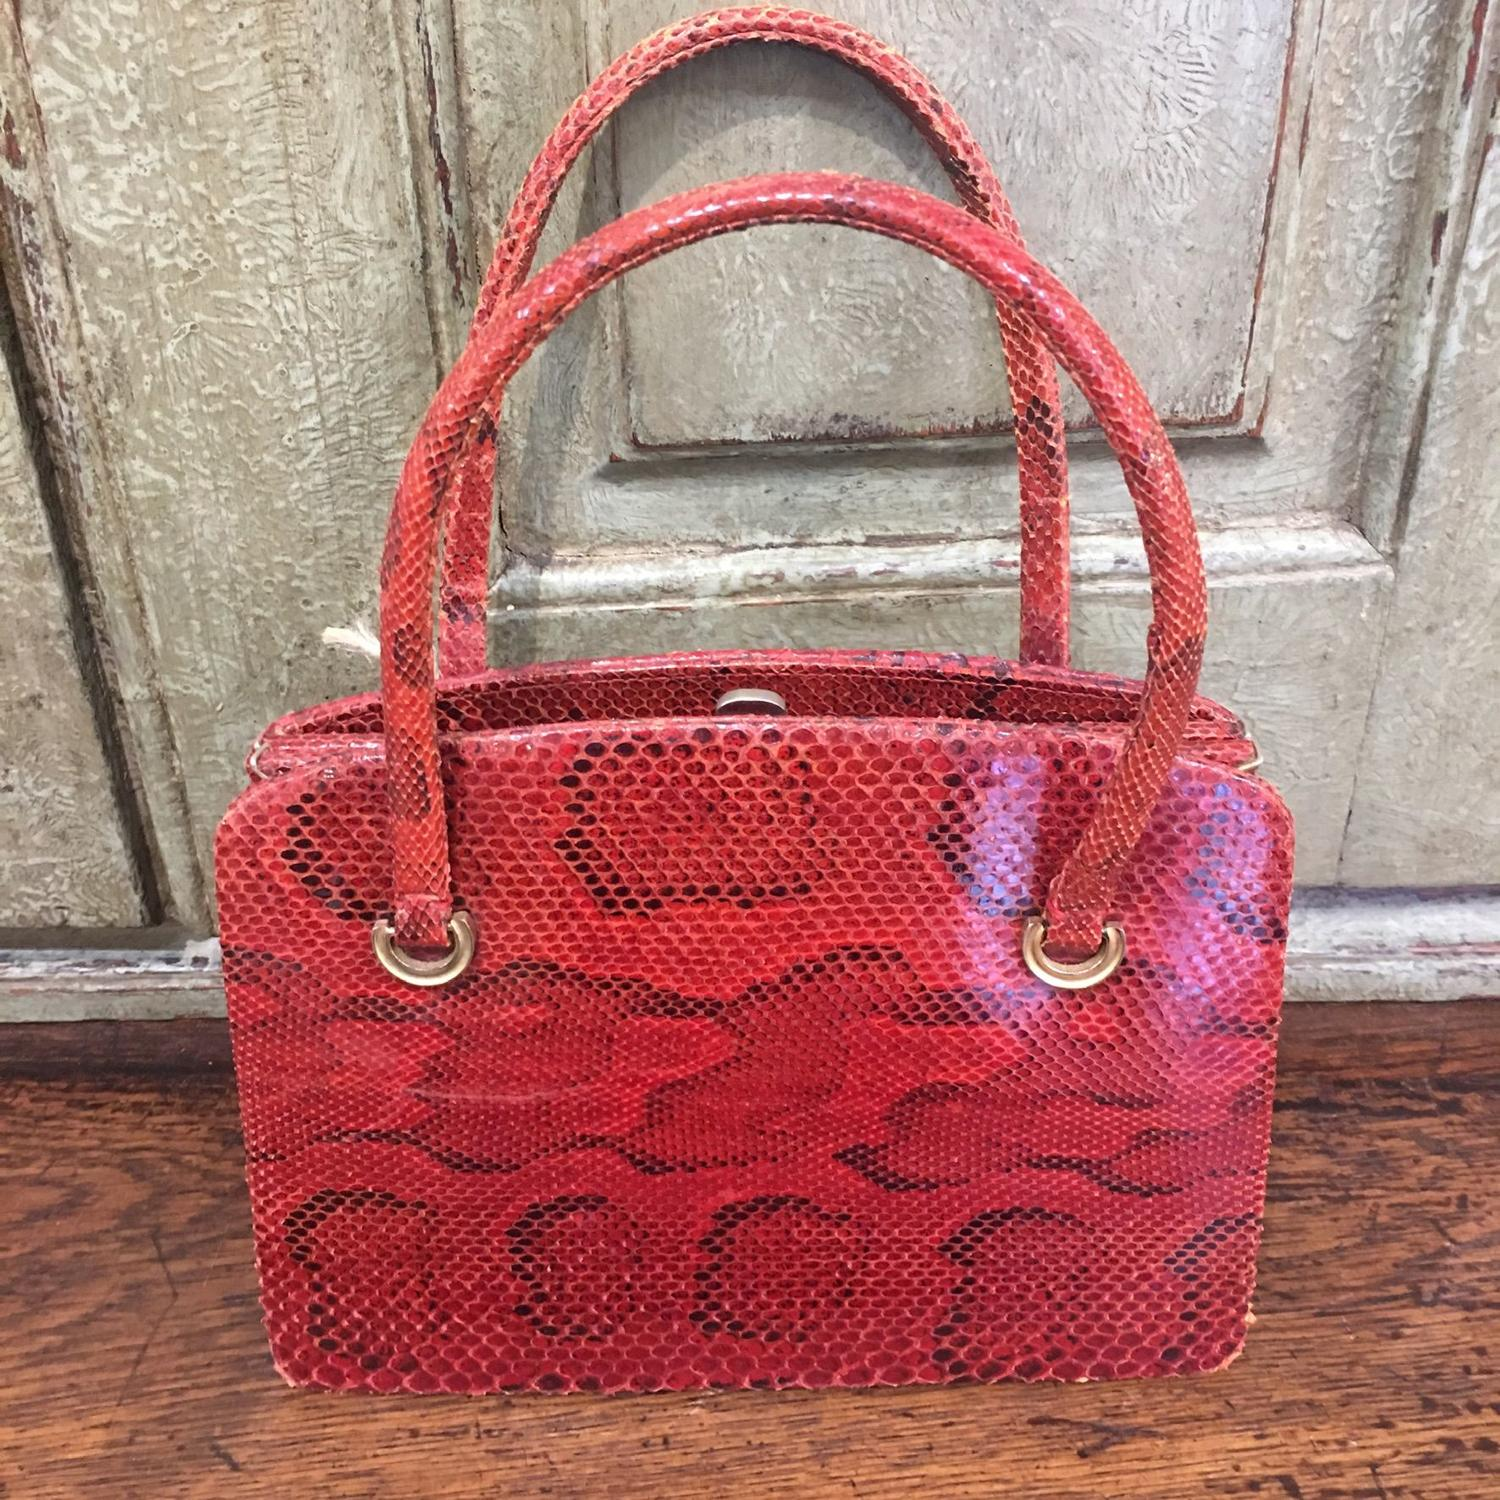 Red lizard handbag